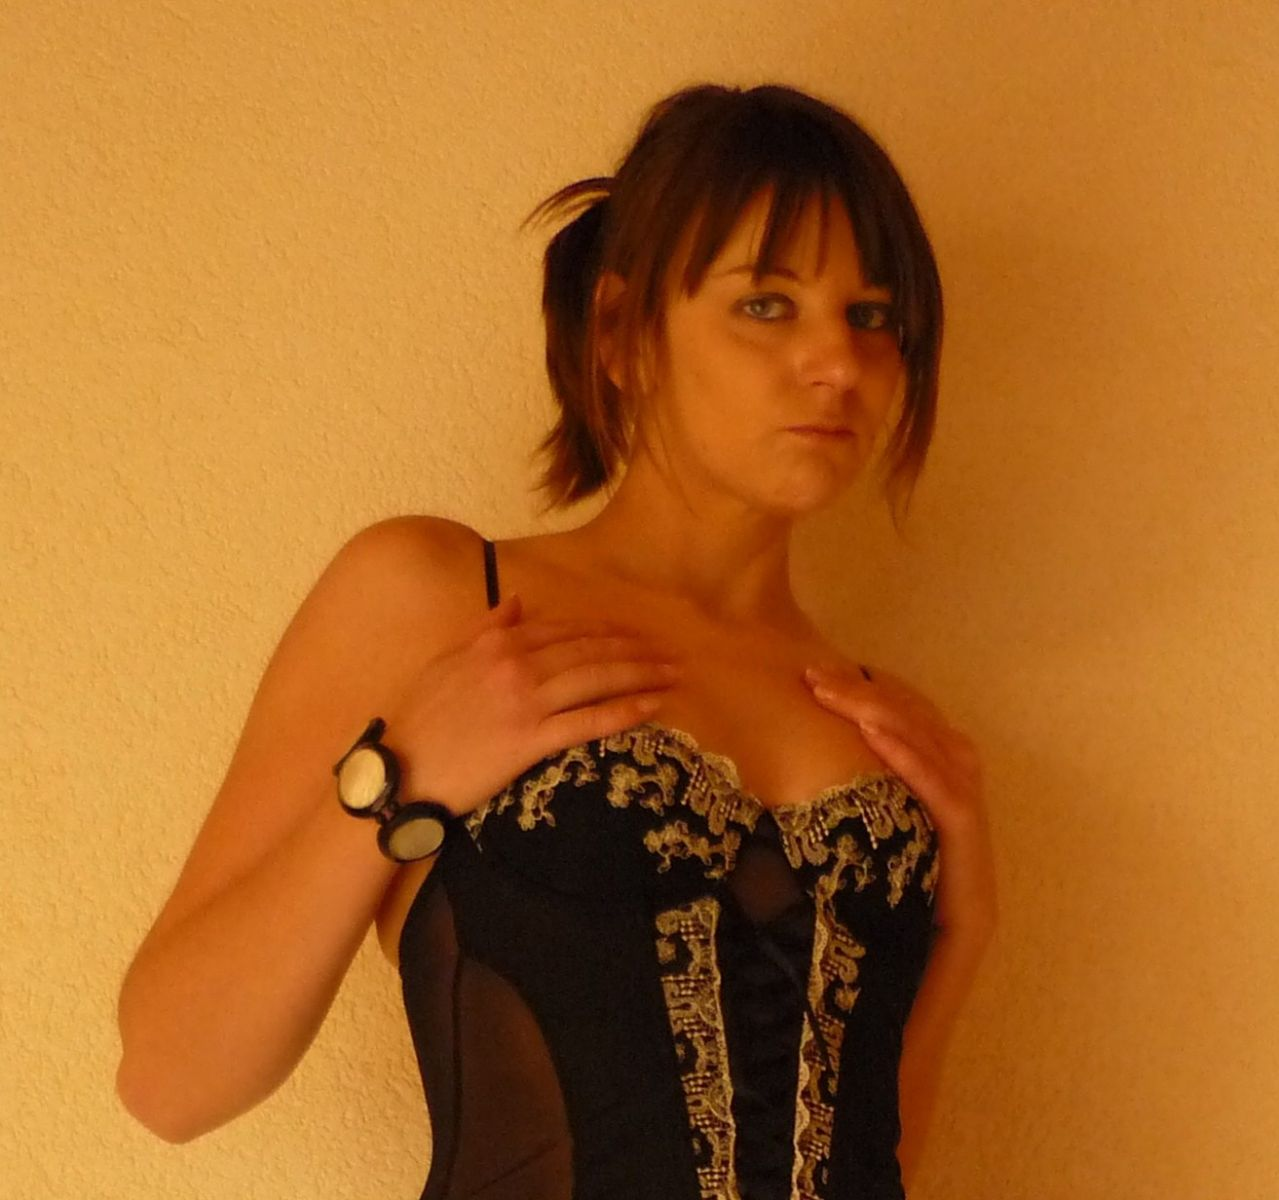 video beurette sexe escort boulogne billancourt